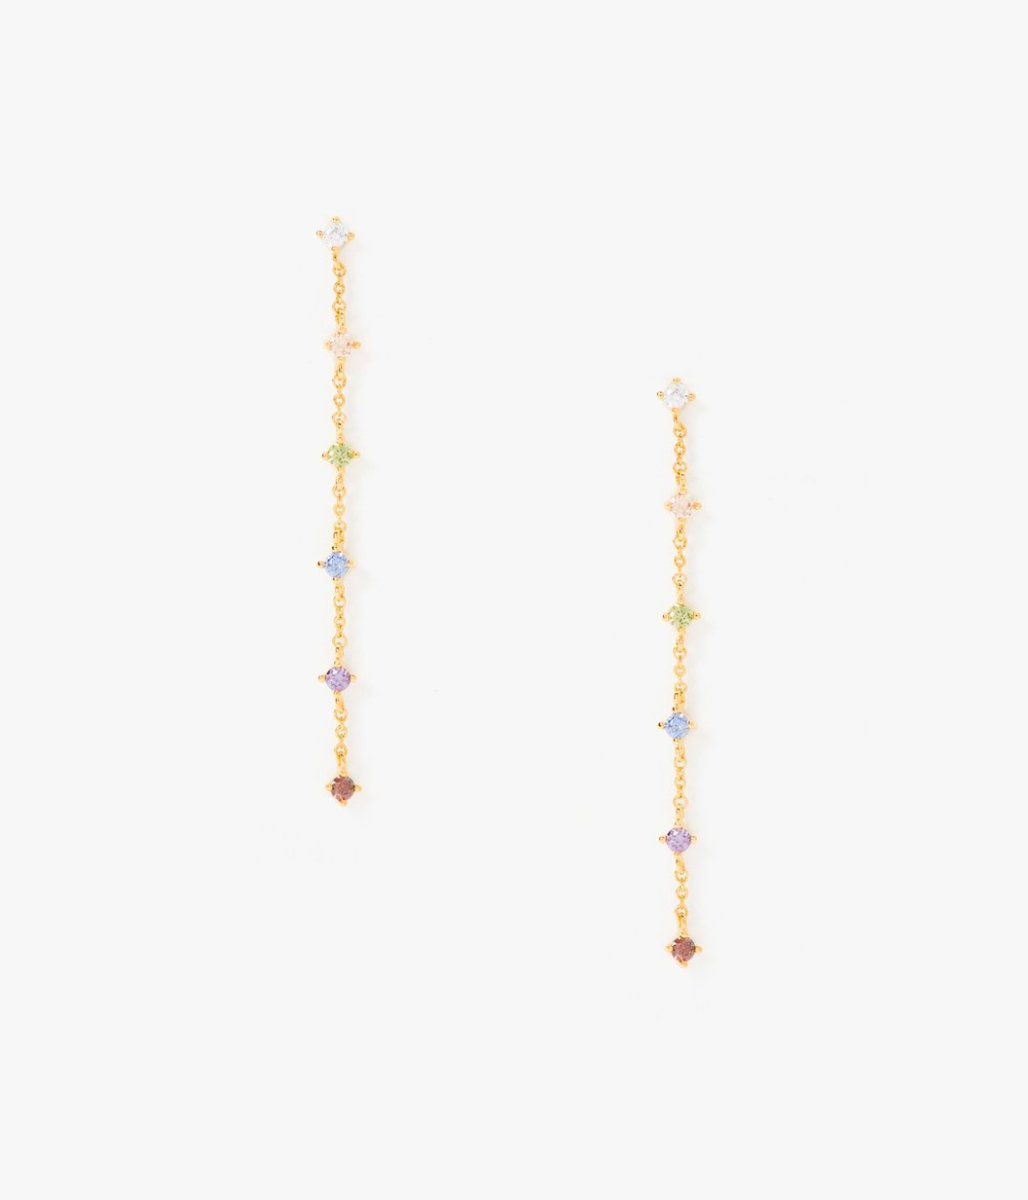 Multi_Colored_Dangle_Earrings_l_1056x1248